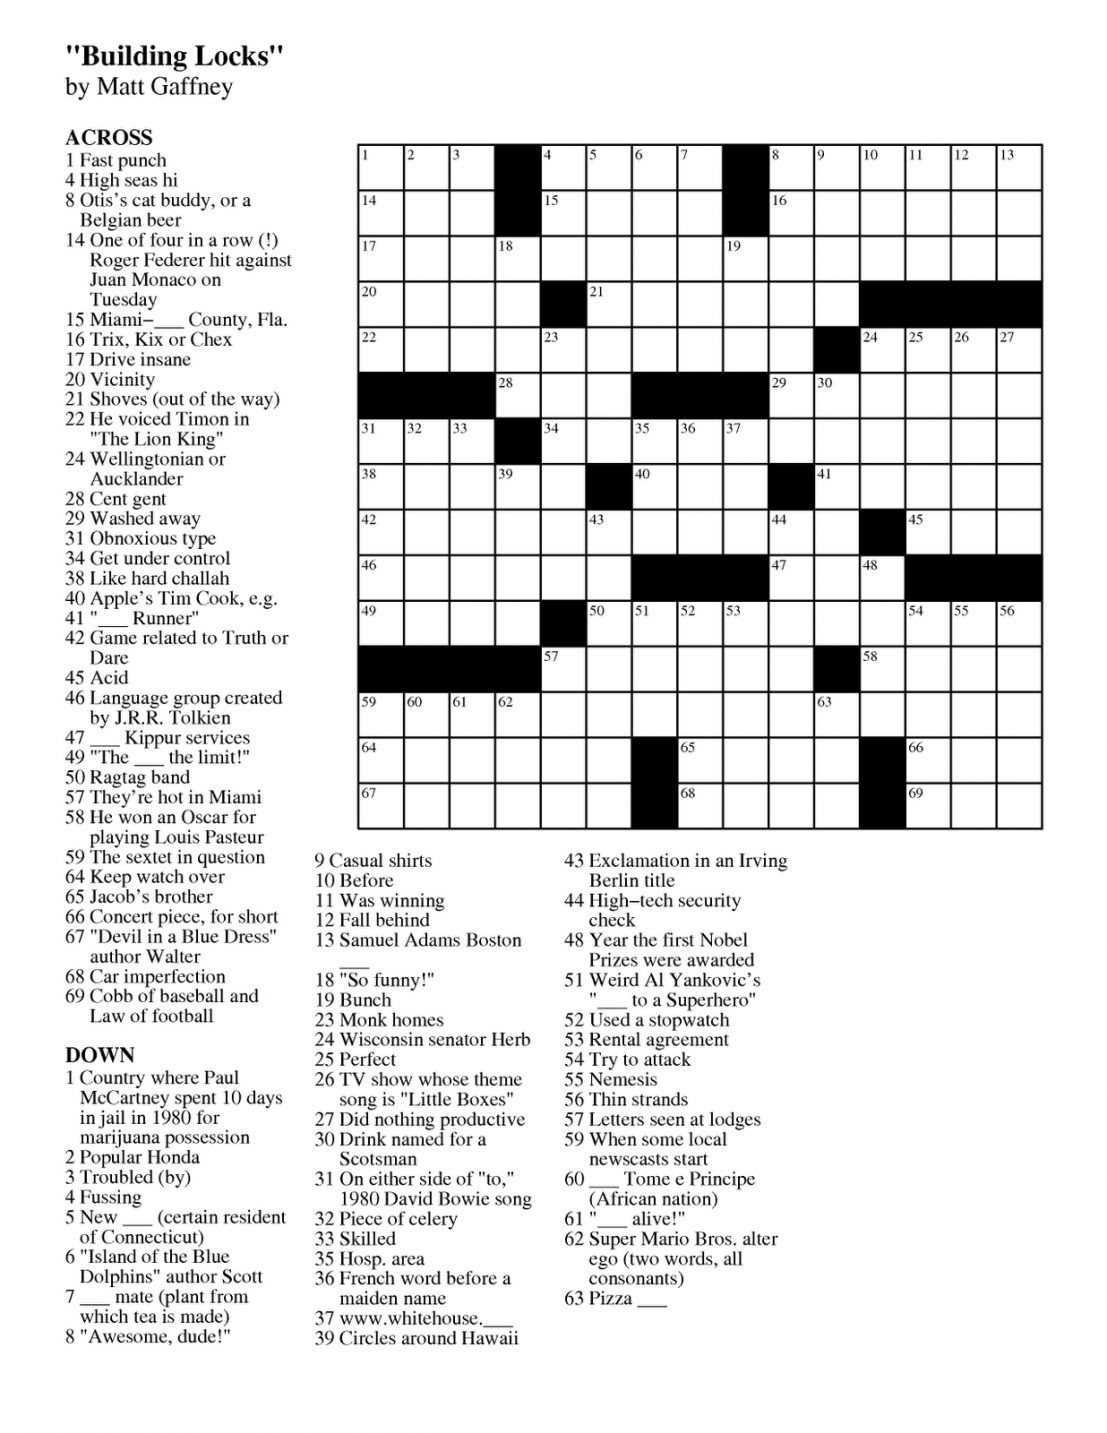 Tools Atozteacherstuff Freetable Crossword Puzzle Maker Easy - Free - Printable Crossword Fill In Puzzles